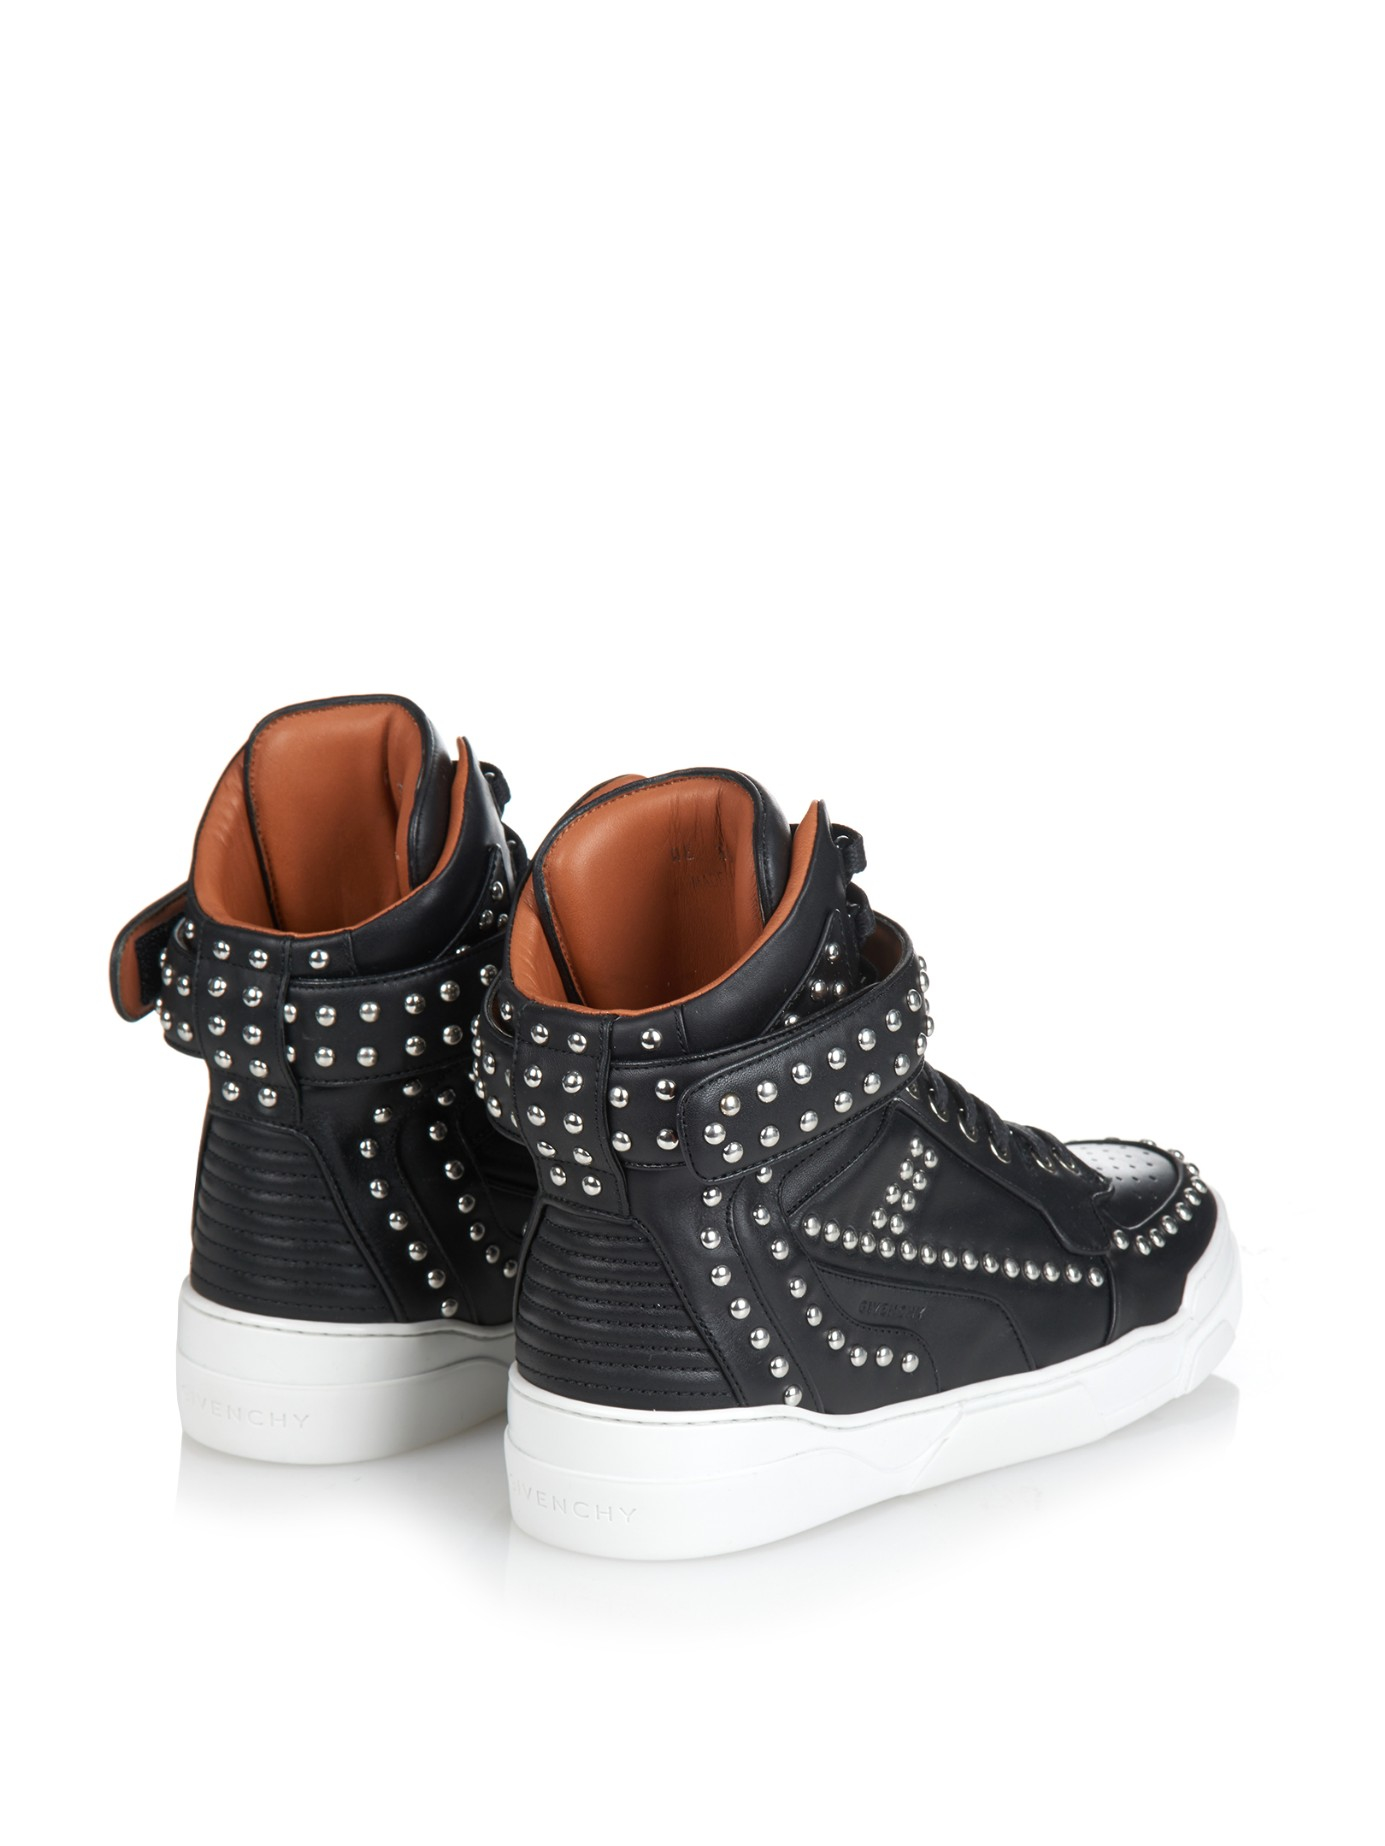 Givenchy Leather High Trainers HDuDUFBIQd